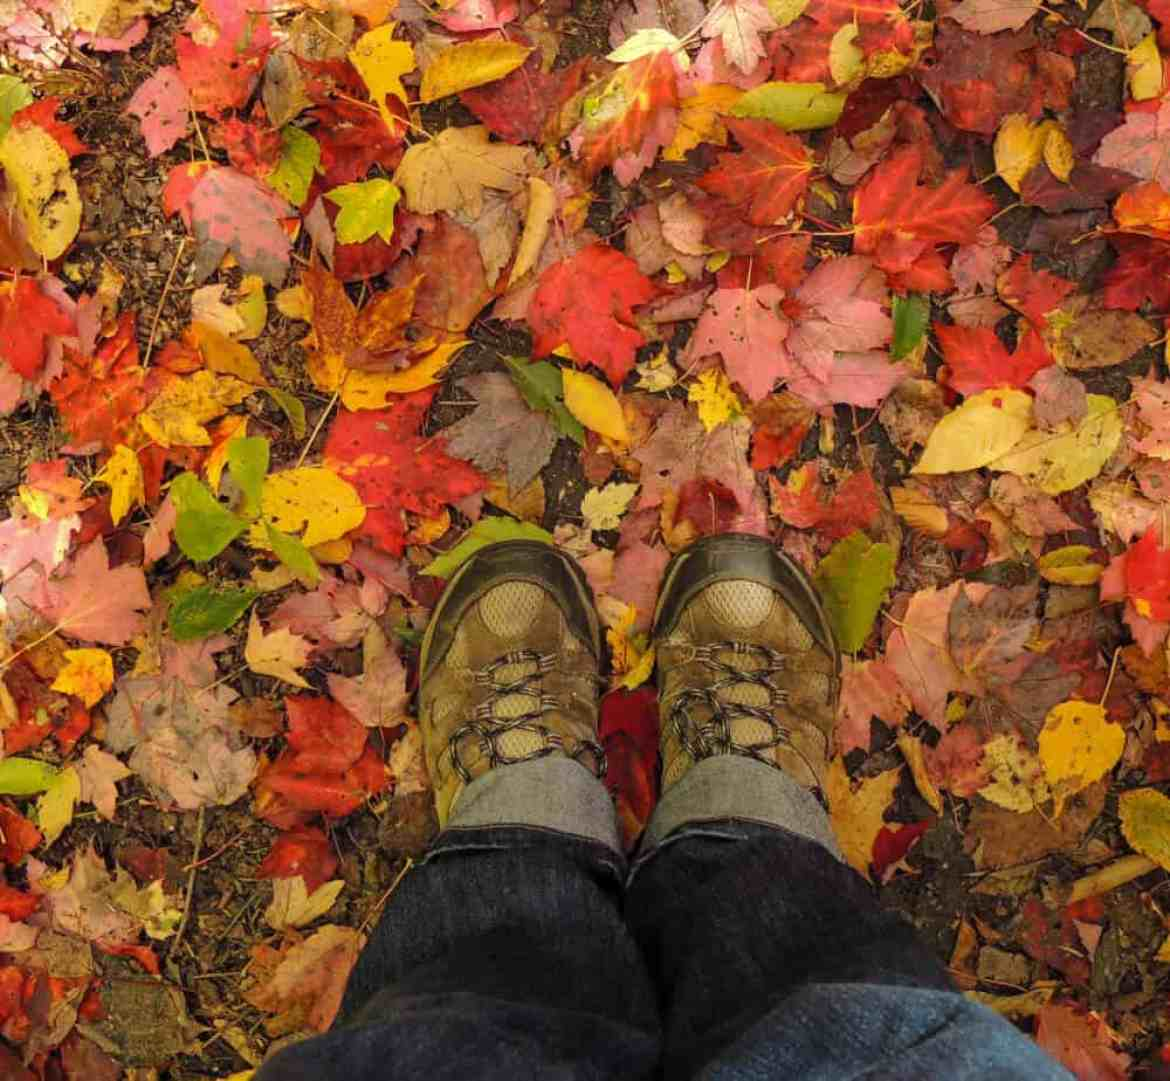 a pair of sneakers surrounded by colorful fall leaves on the March Cataract Falls Trail.